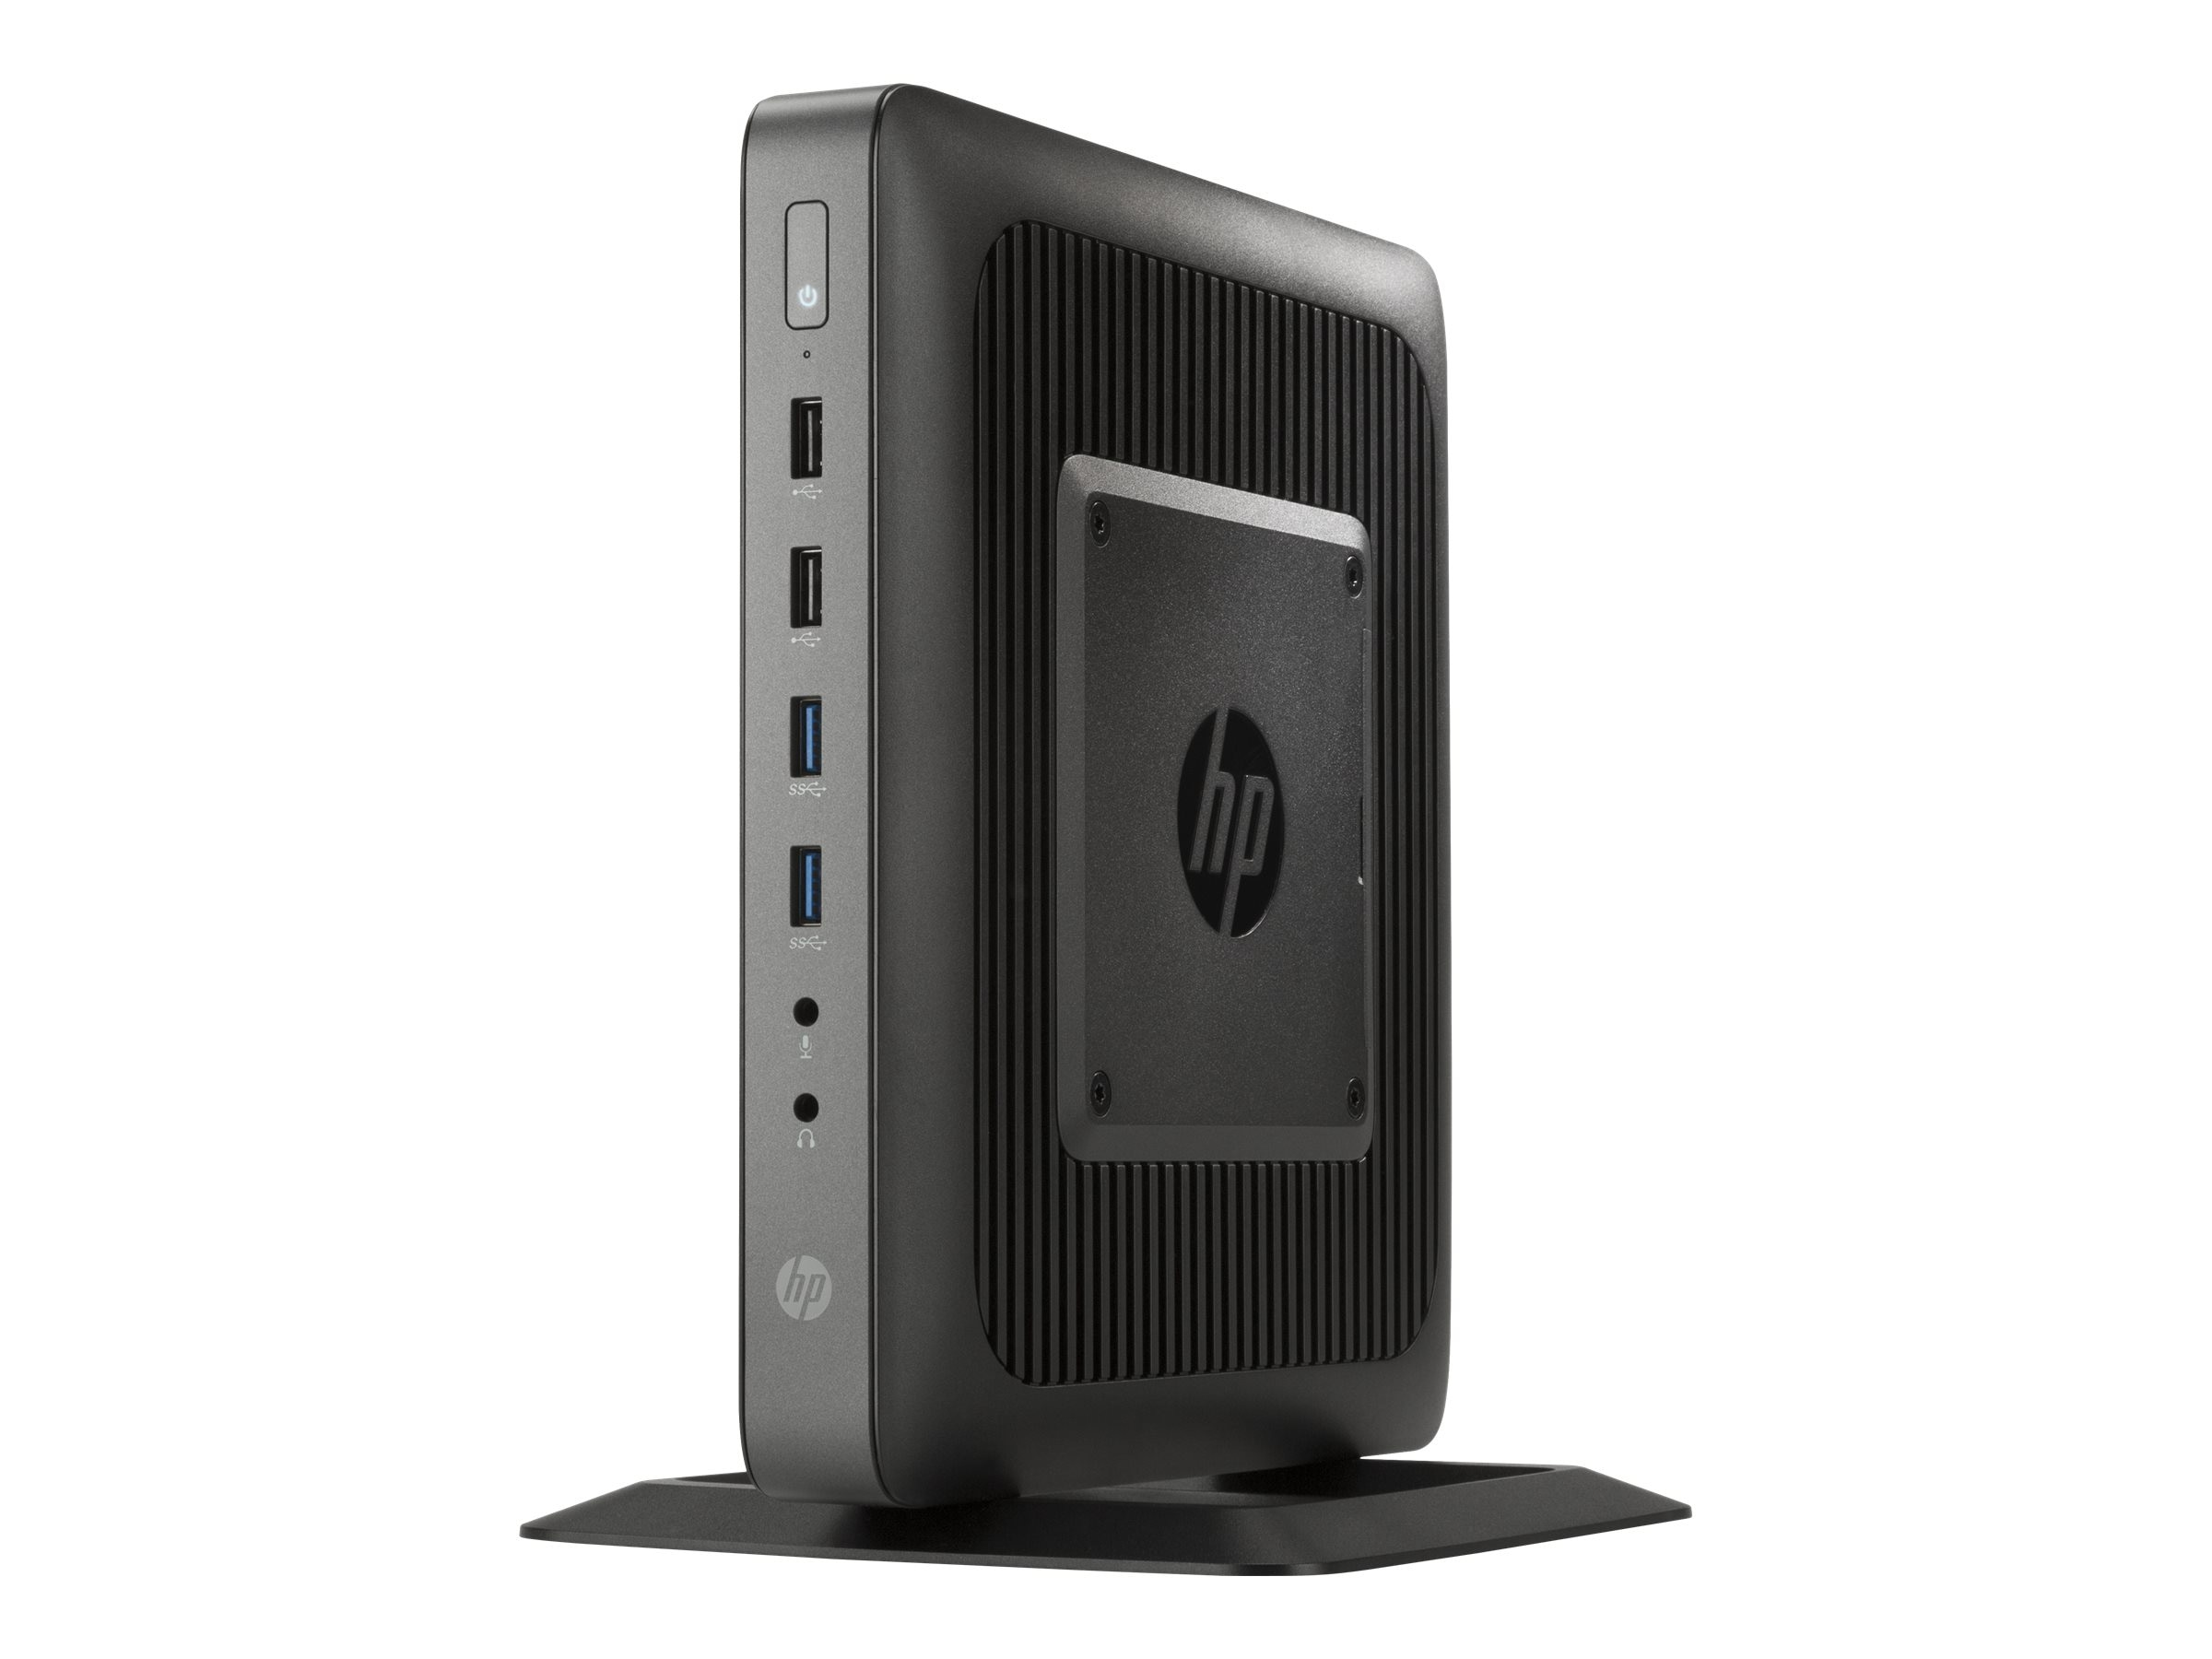 HP t620 Flexible Thin Client AMD QC GX-415GA 1.5GHz 4GB 64GB Flash HD8330E ac BT WES7E